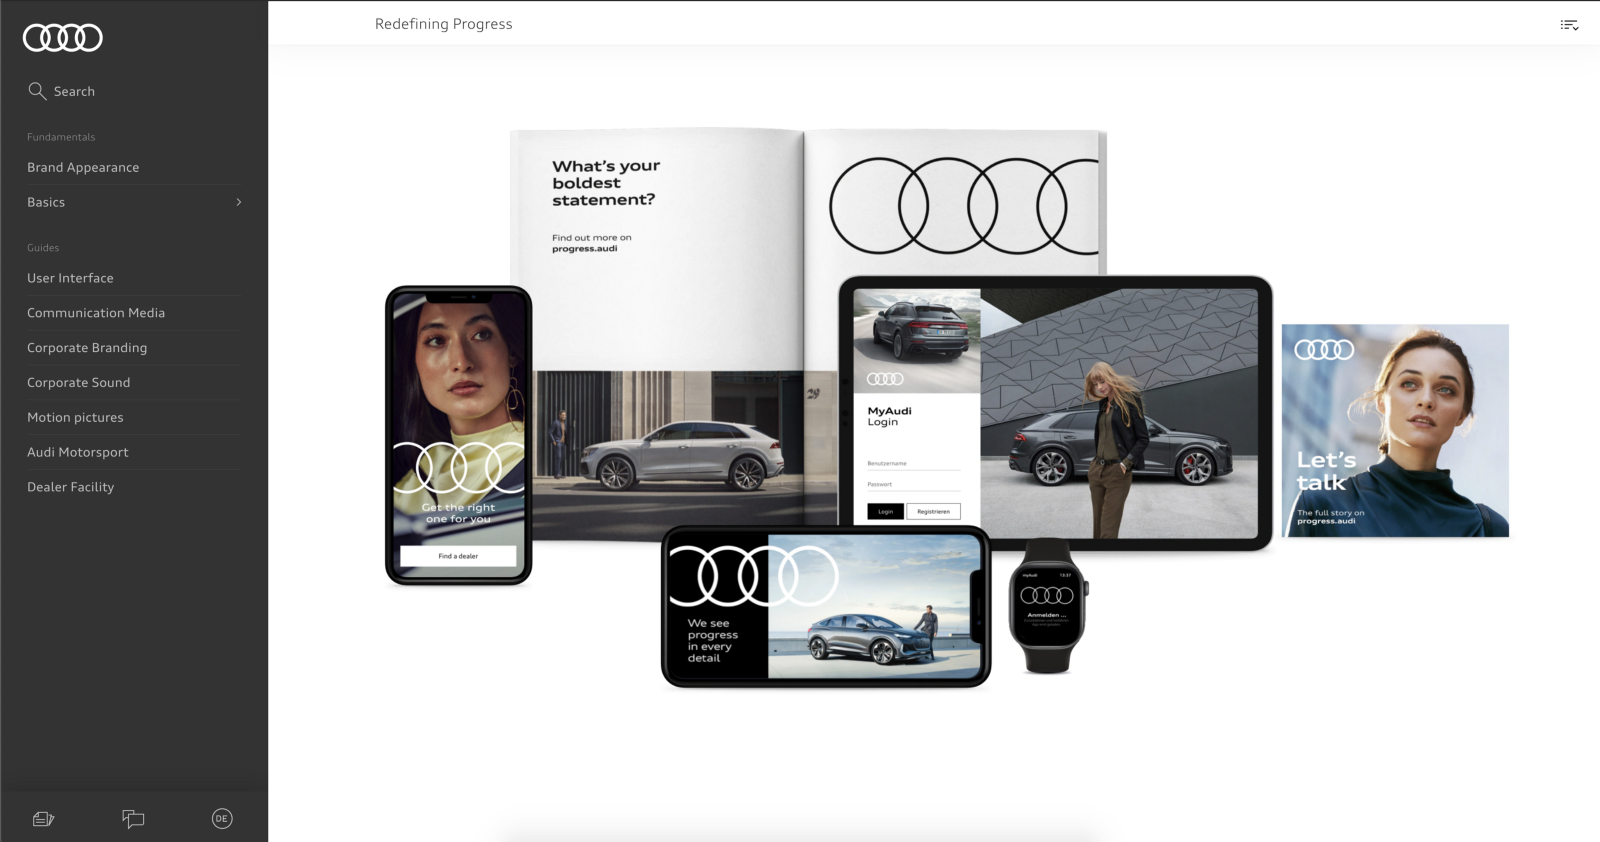 Audi brand guidelines (source)